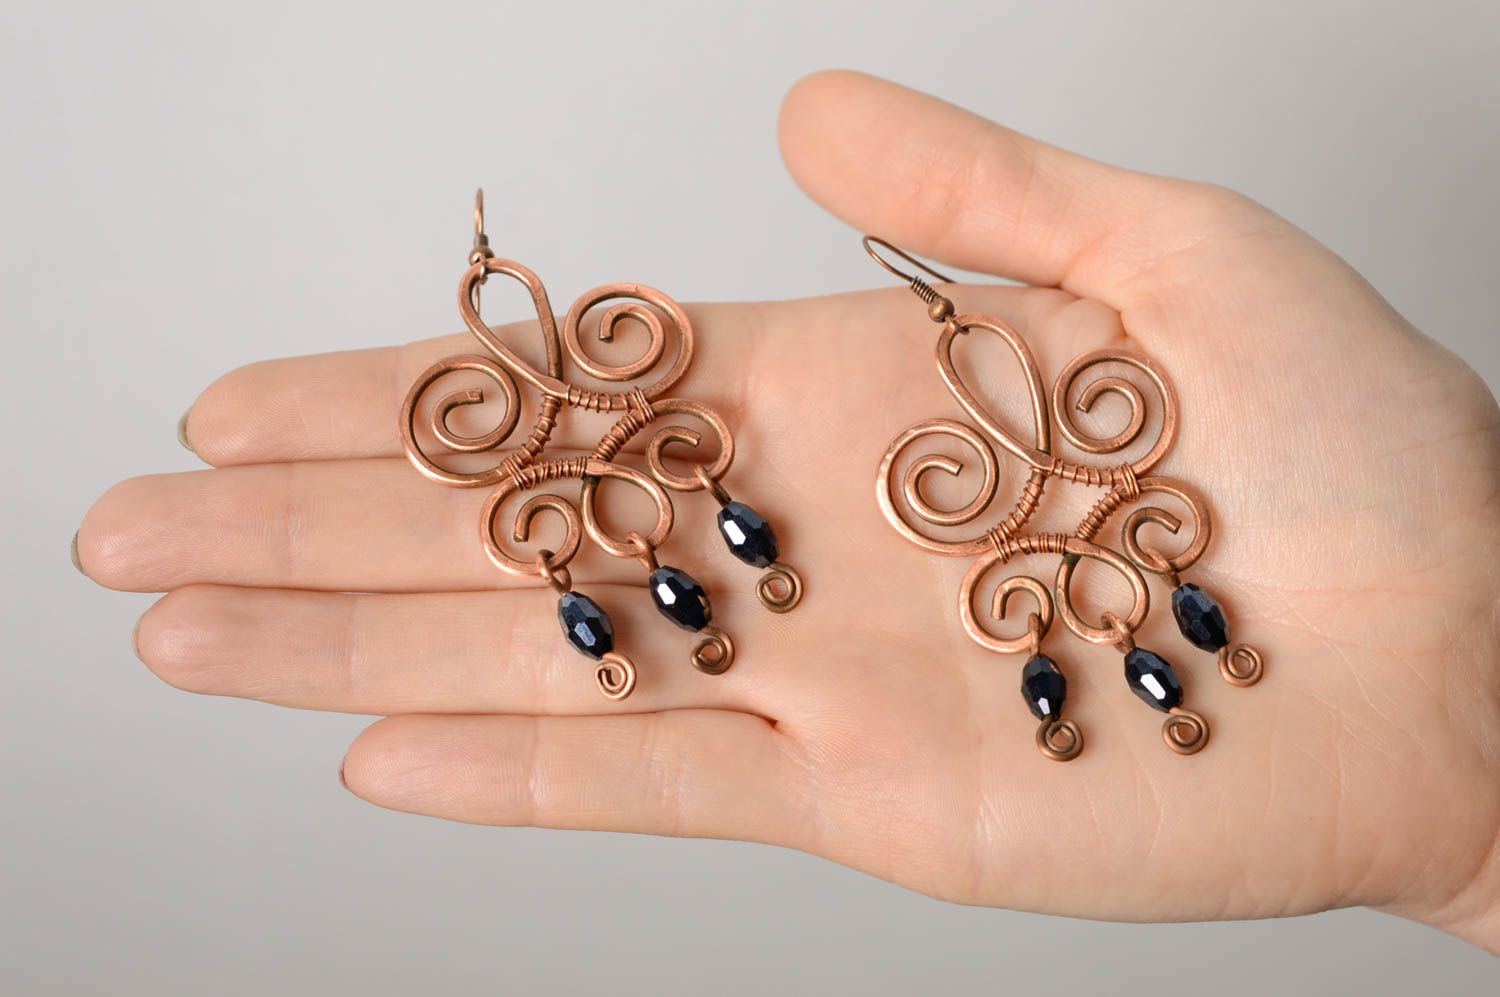 Massive copper earrings made using wire wrap technique photo 4